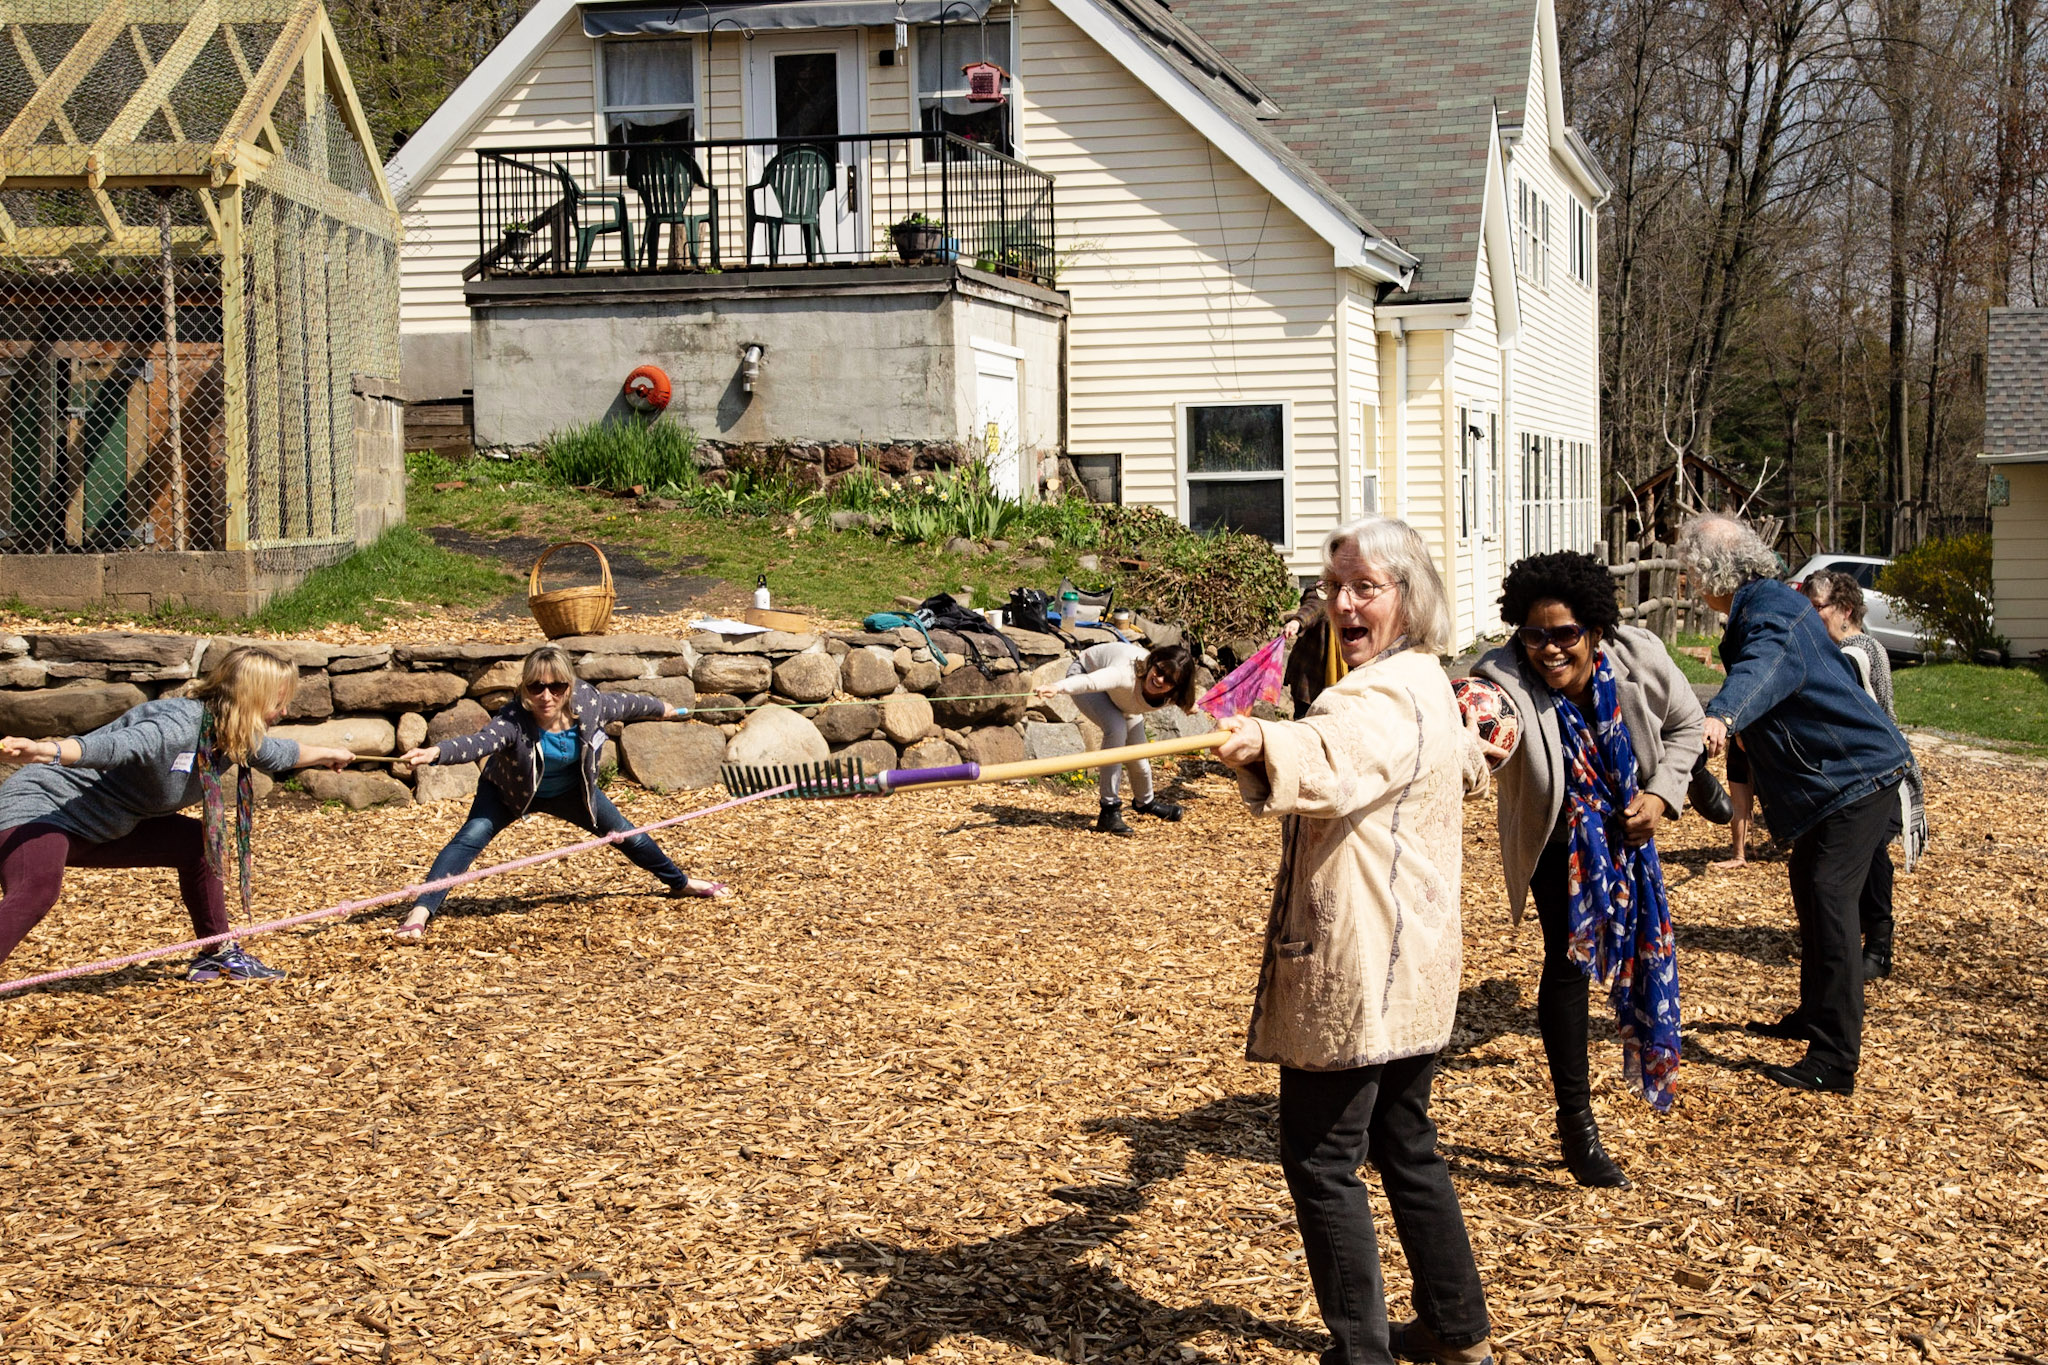 Participants had to plan and work together to make a bridge across the woodchips with some objects.